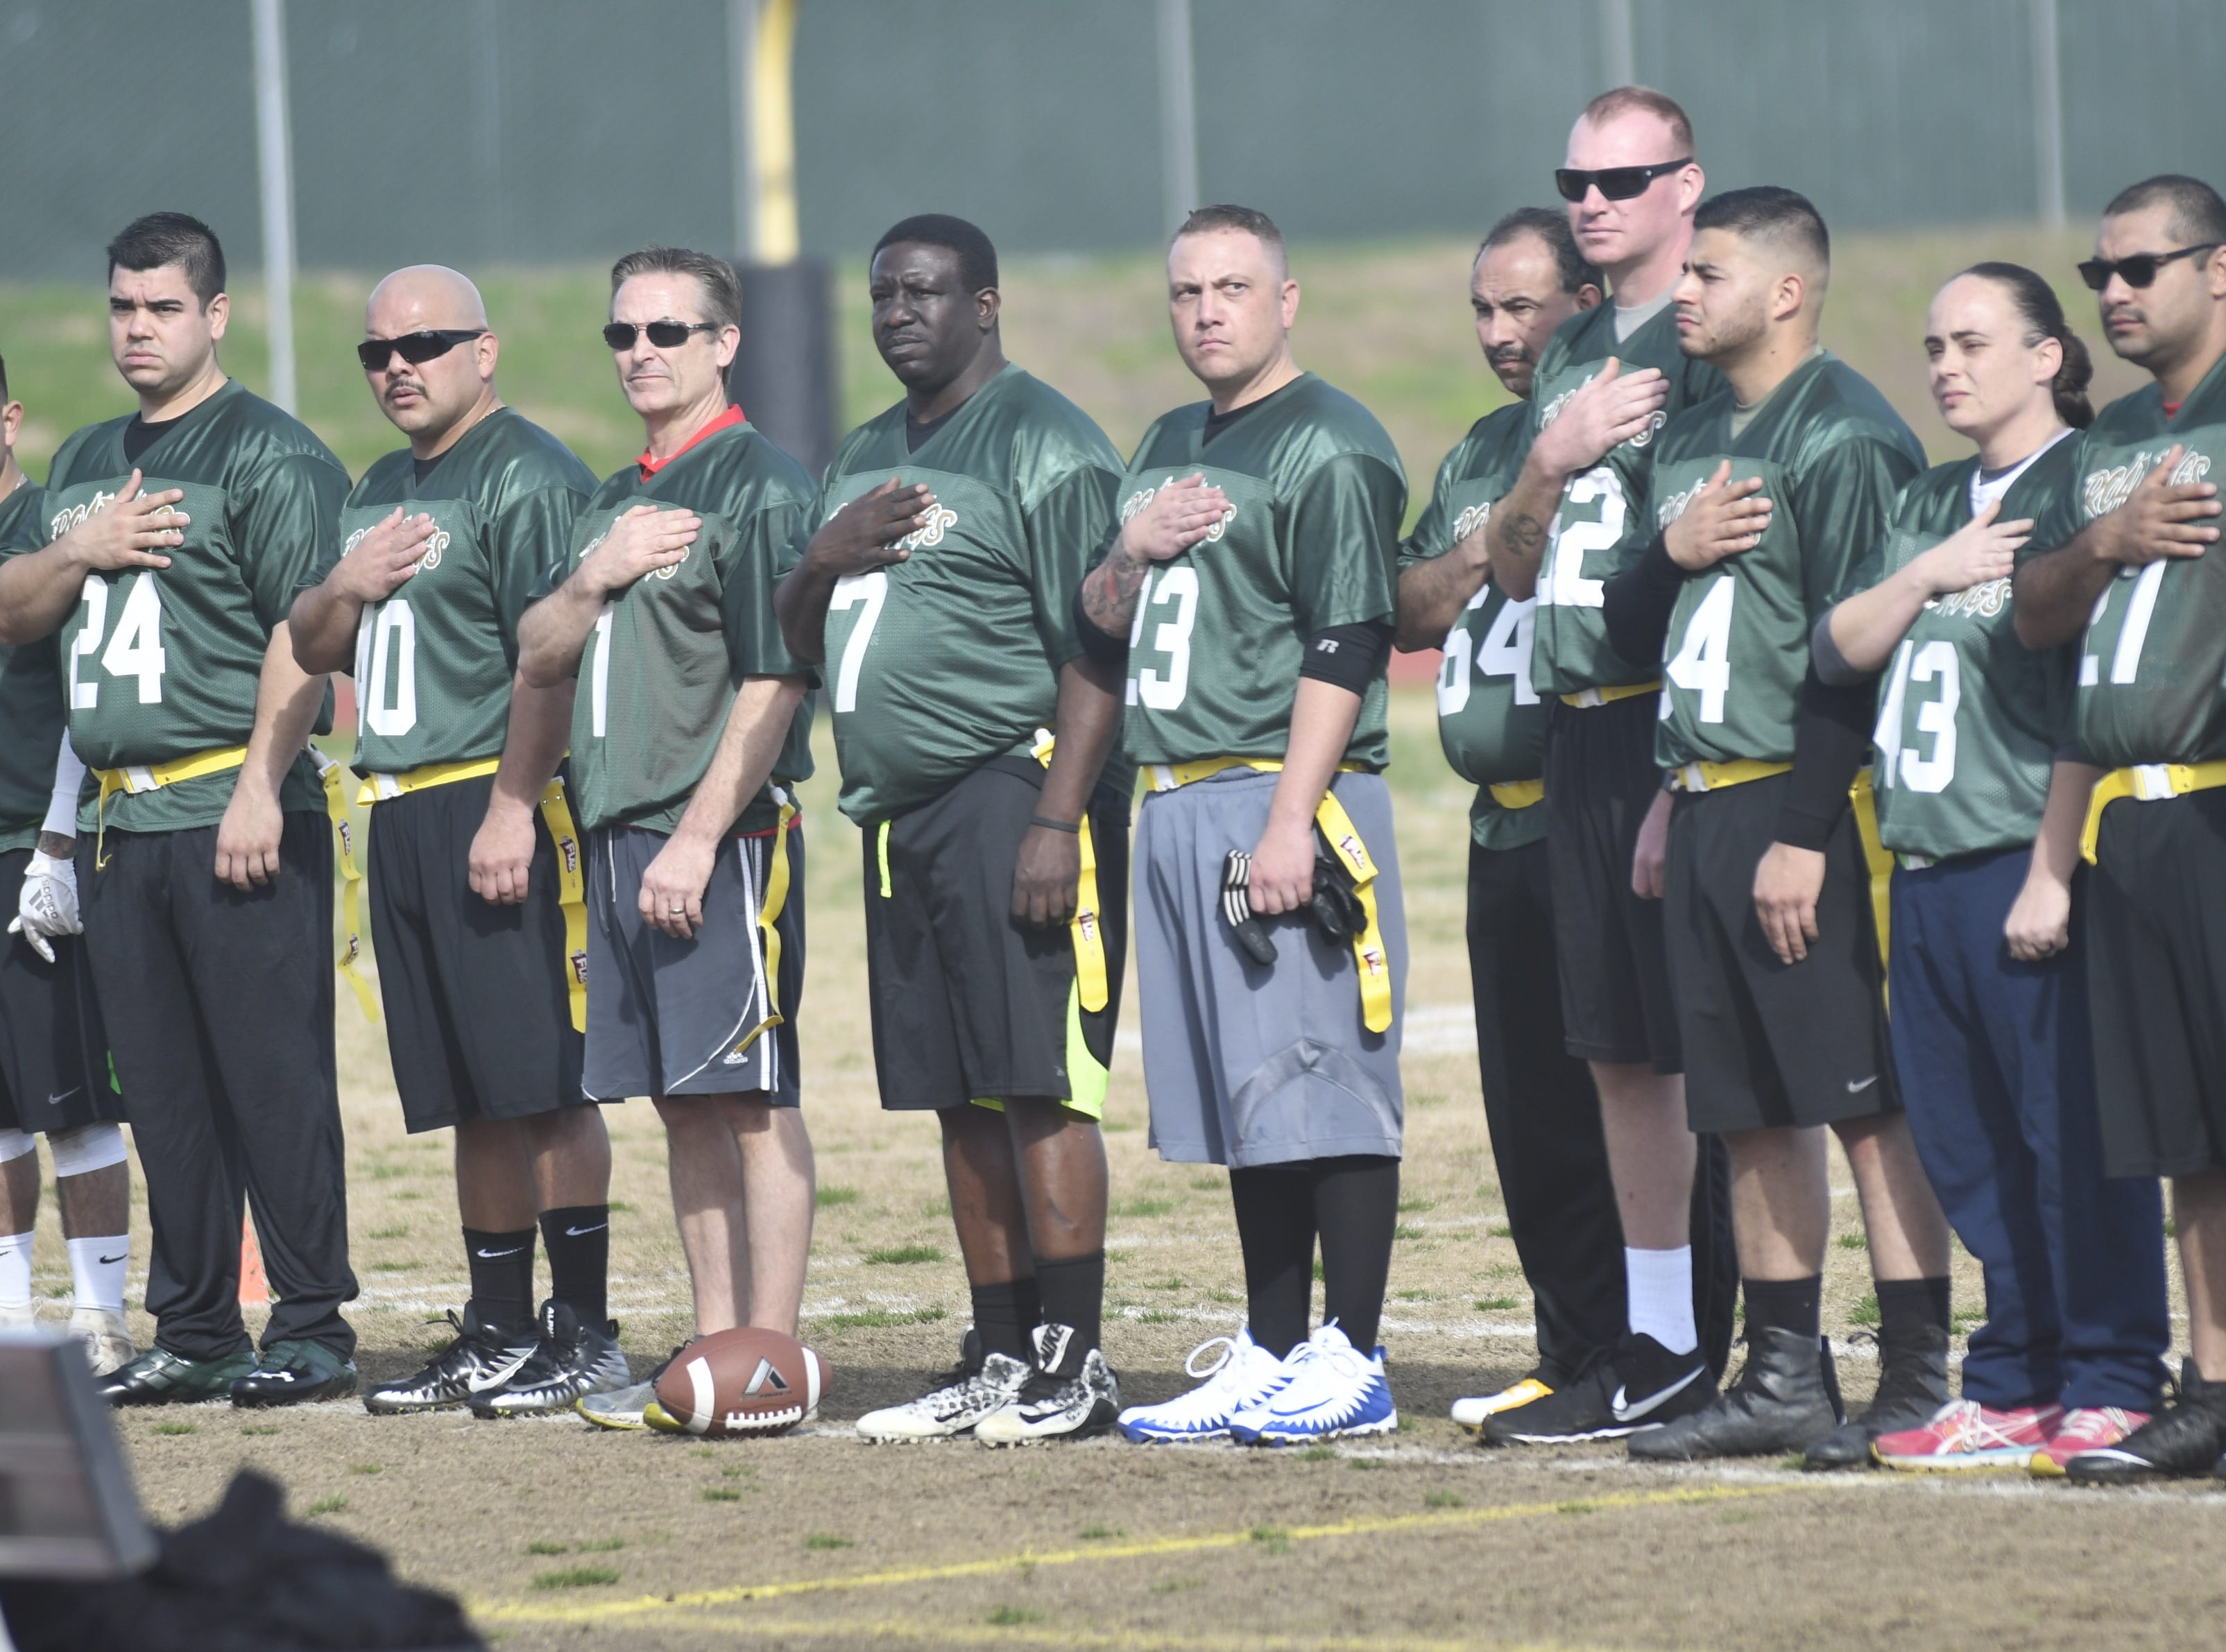 """The Tulare County Sheriff's Department kicked off its new Flag Football League with the Call of Duty benefit game.  On Saturday, the Tulare County Sheriff Department's Road Dawgs took on the NFL Elite. The """"family-friendly"""" game was played at the Groppetti Community Stadium at Golden West High School.  The game kicked off the sheriff's new Flag Football League free for children, kindergarten through eighth grades."""